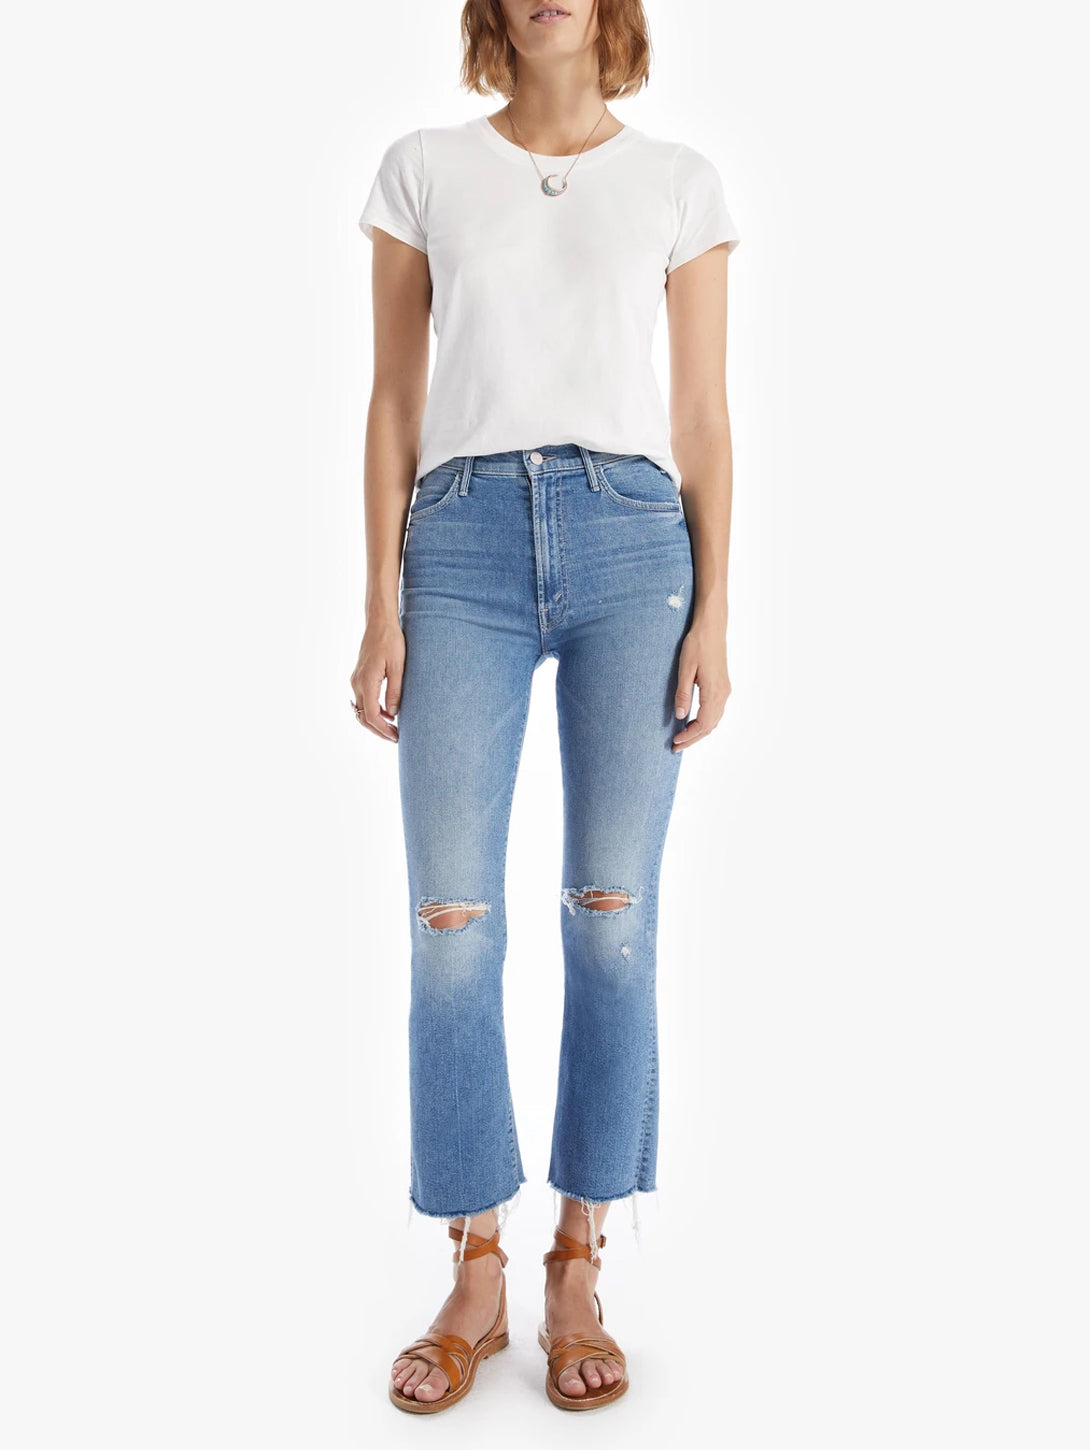 Hustler Ankle Fray Bootcut Jean - Understudy-Mother-Over the Rainbow